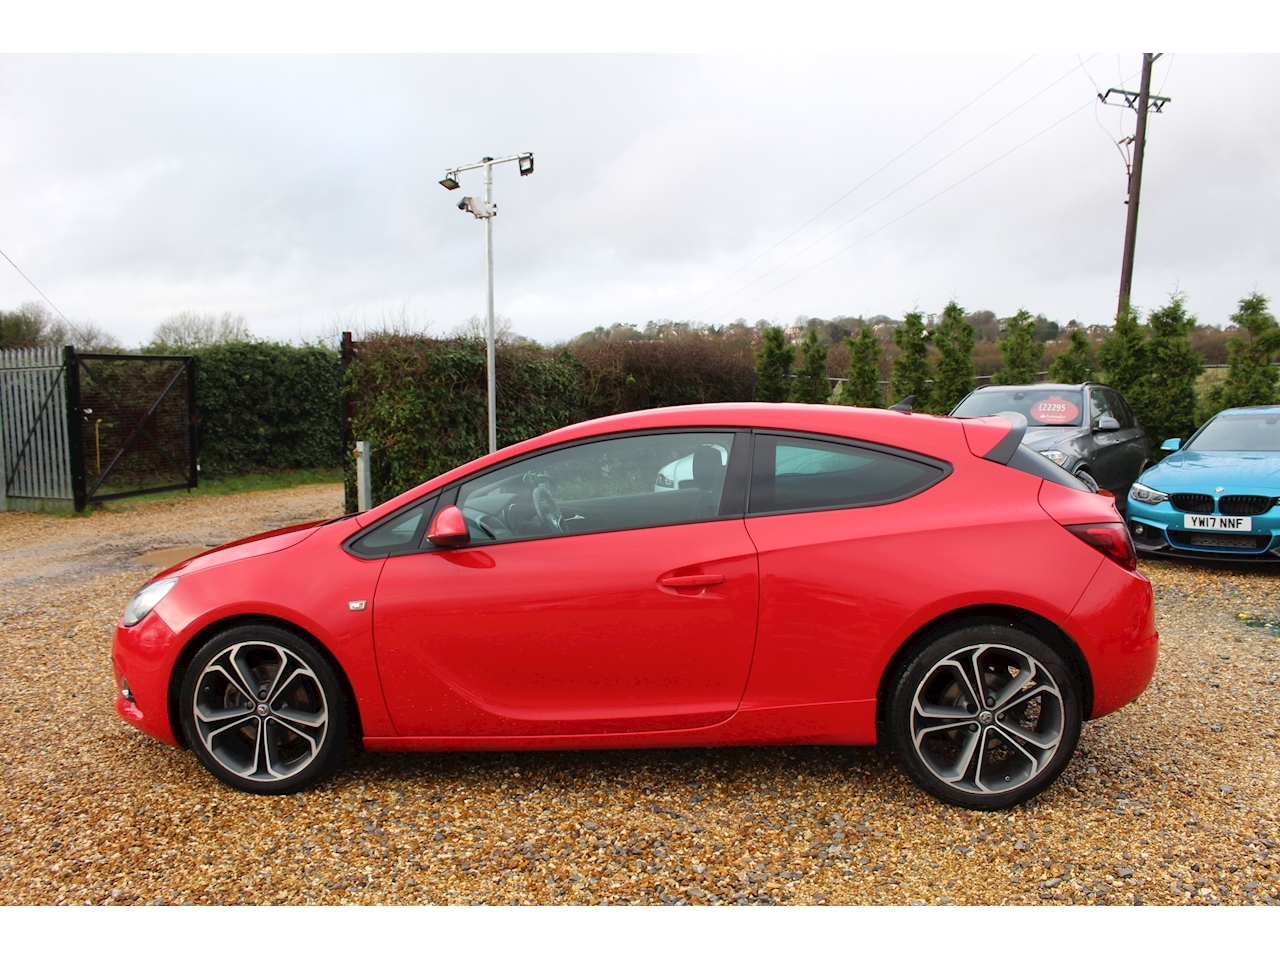 Vauxhall 1.4T Limited Edition Coupe 3dr Petrol (s/s) (140 ps)